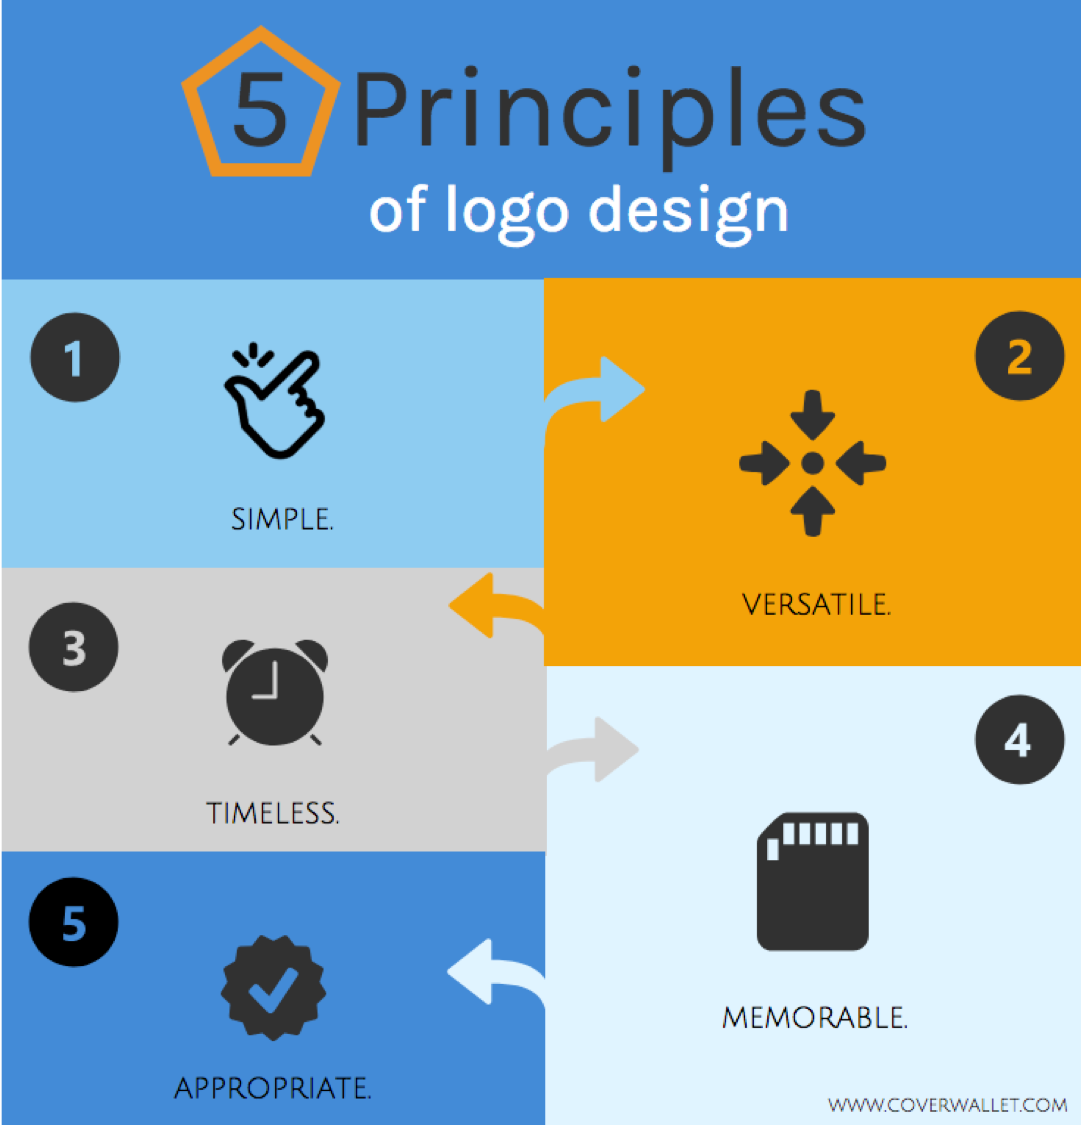 Principles of logo design